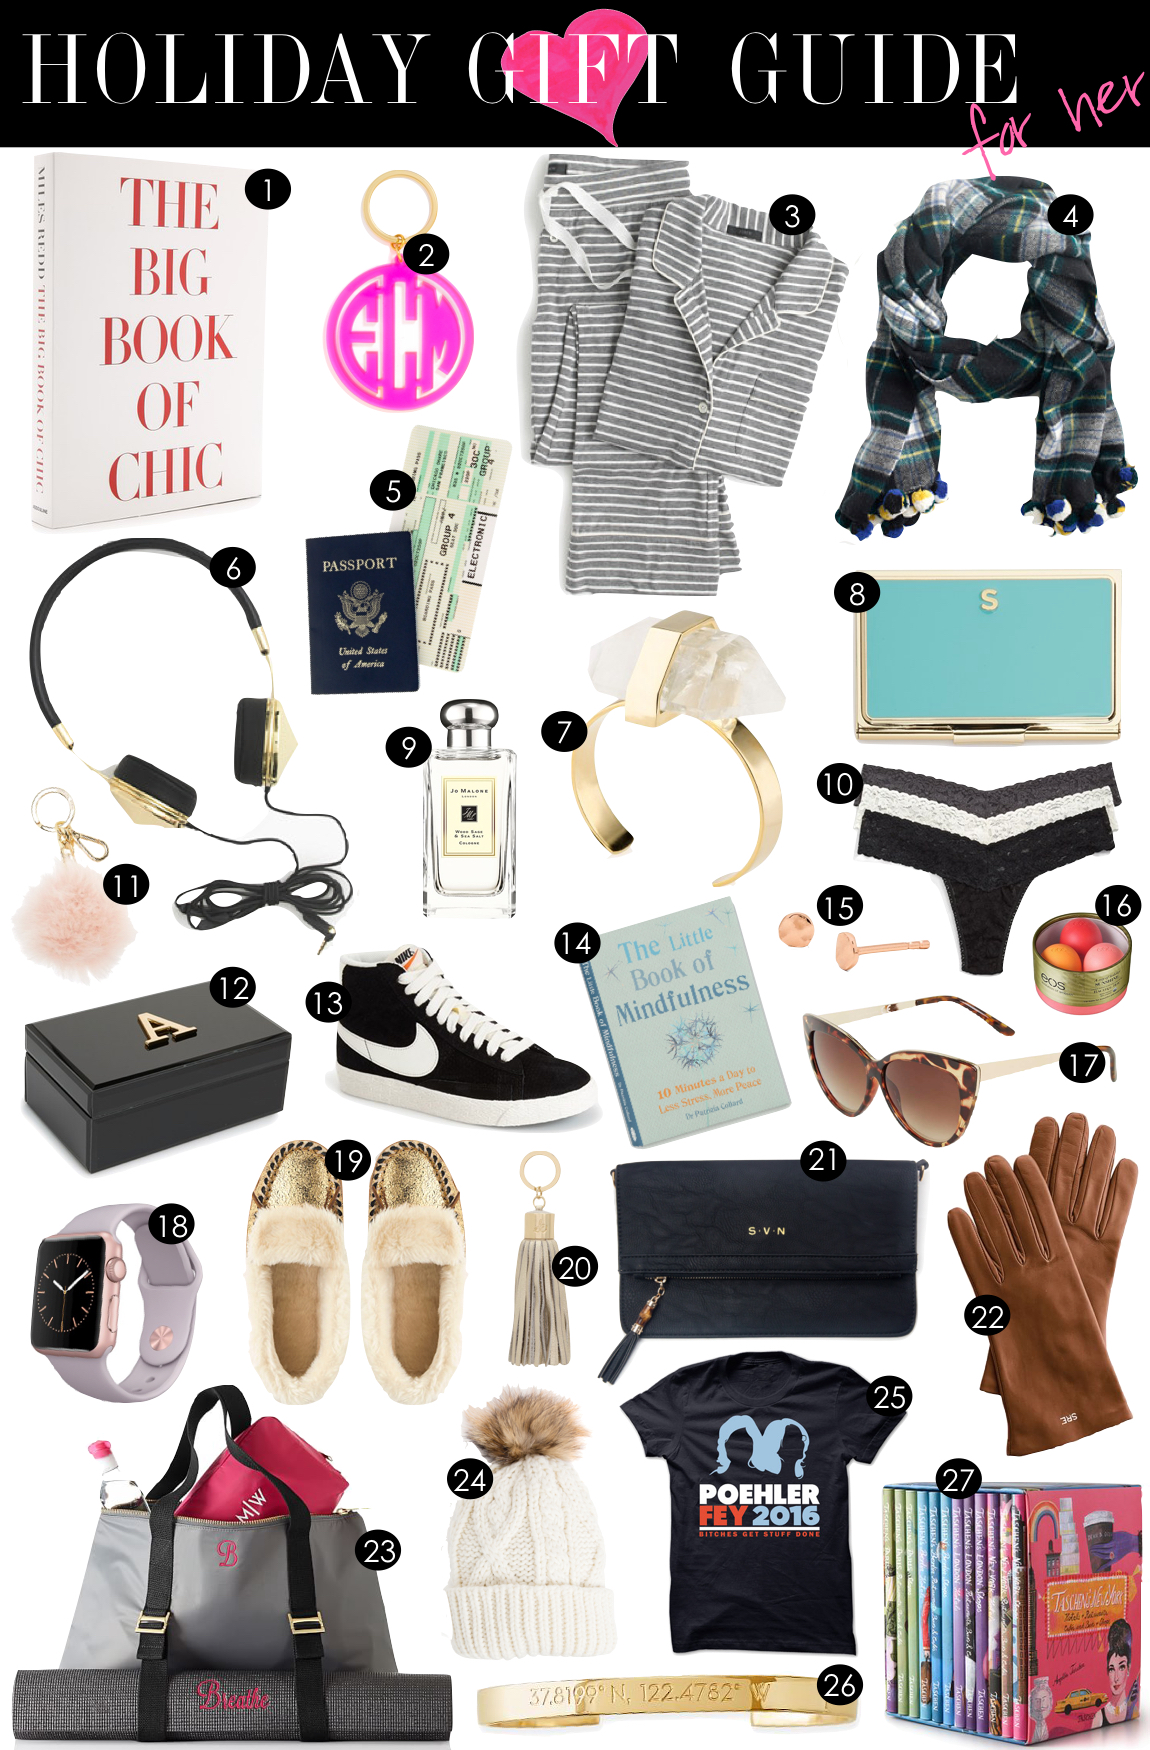 holiday gift guide for her kikis list